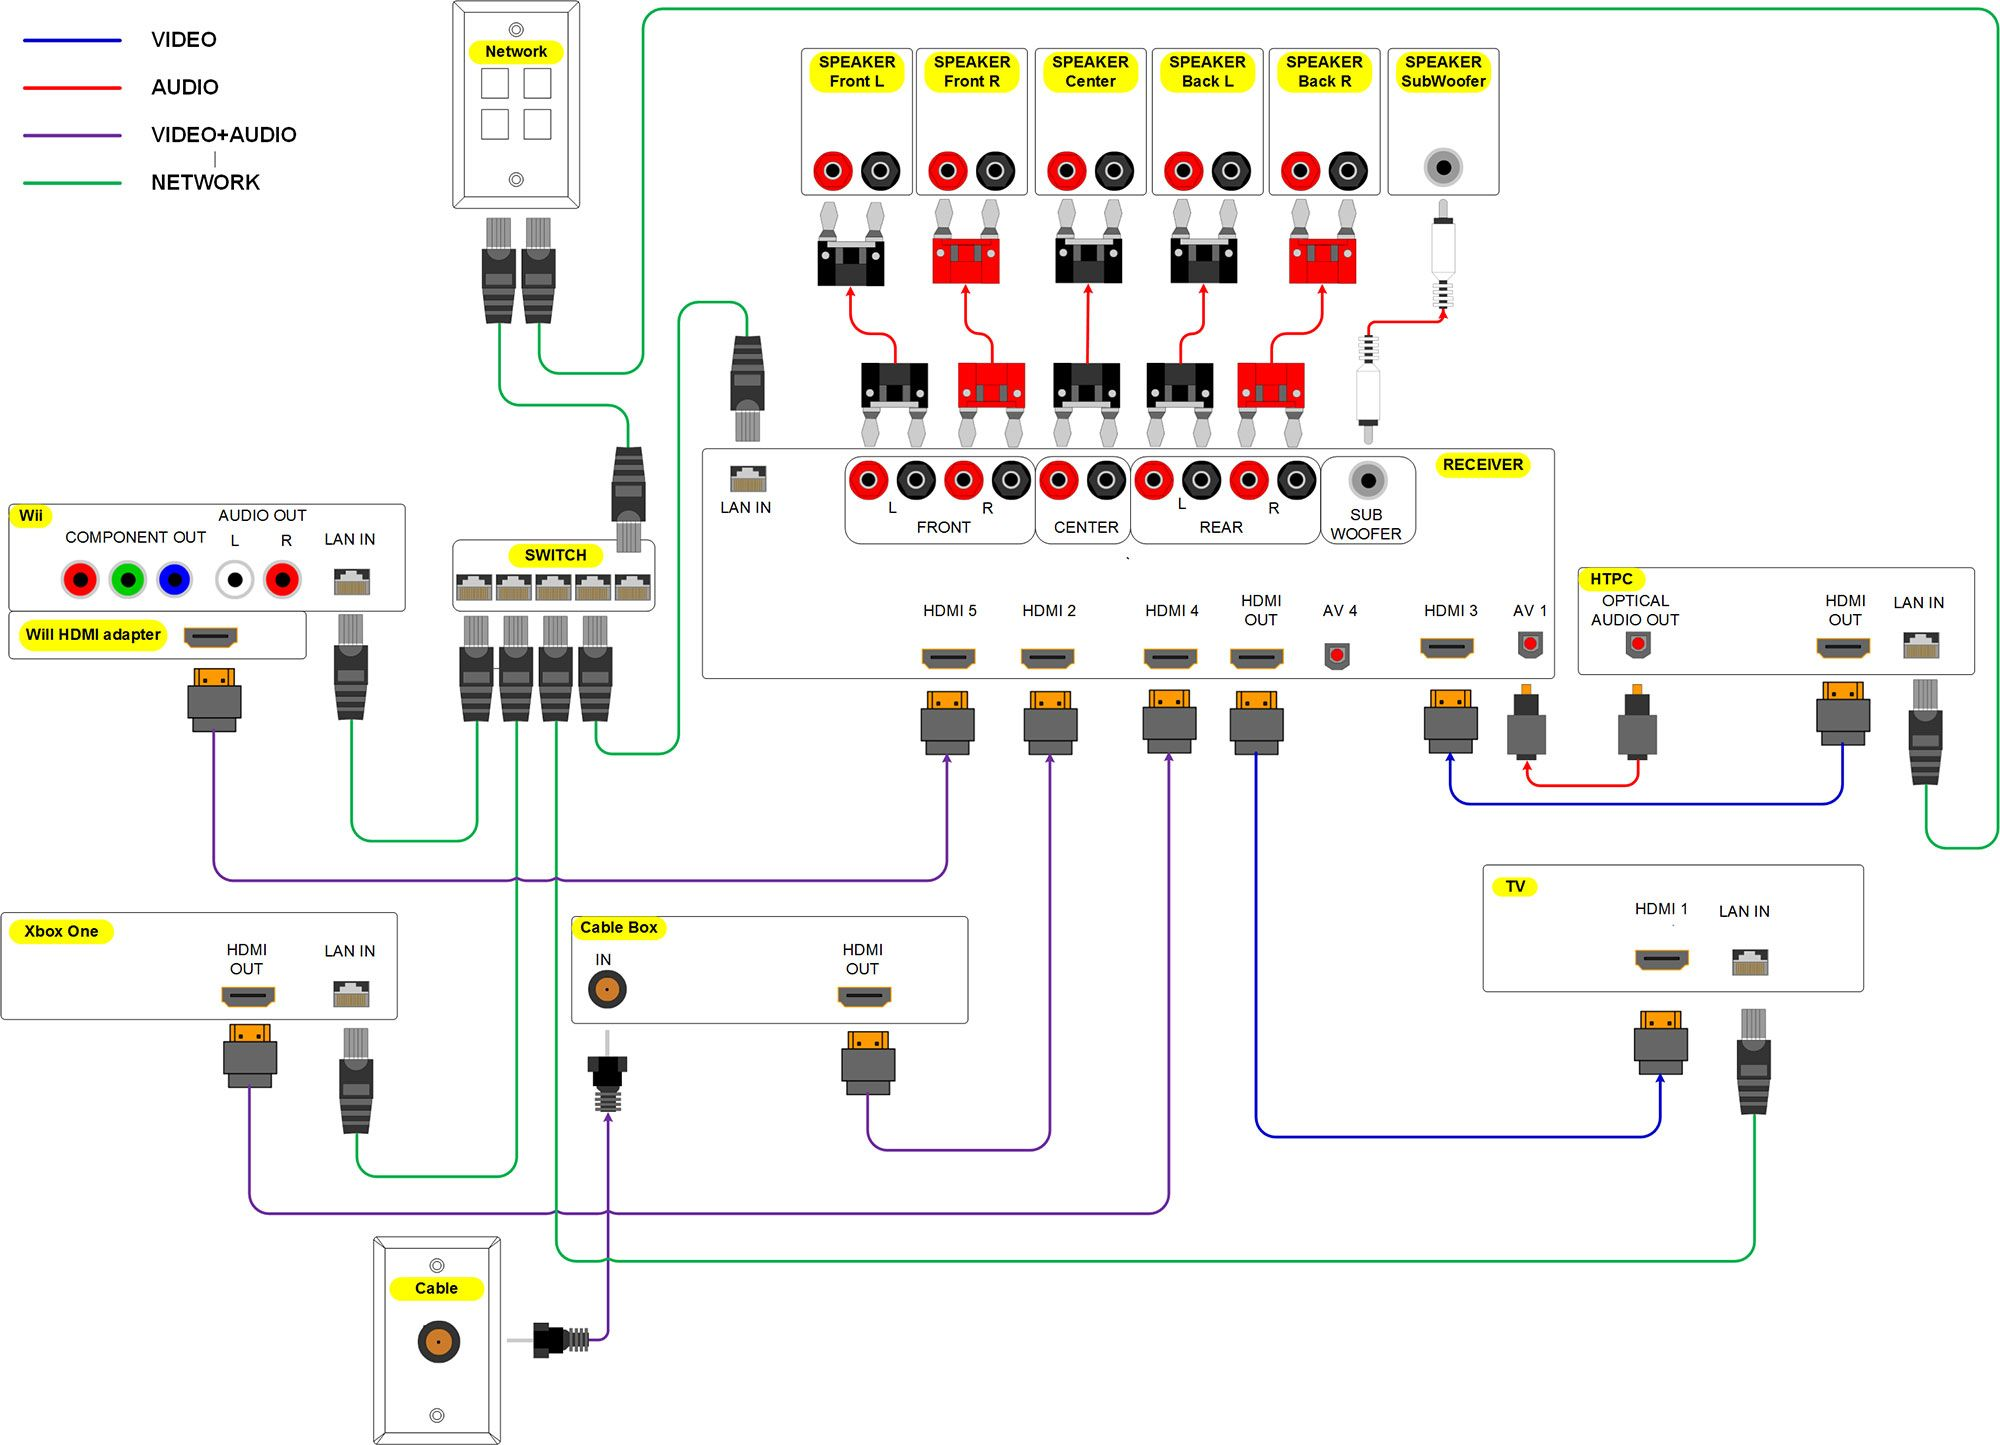 small resolution of home theater wiring diagram click it to see the big 2000 pixel wide